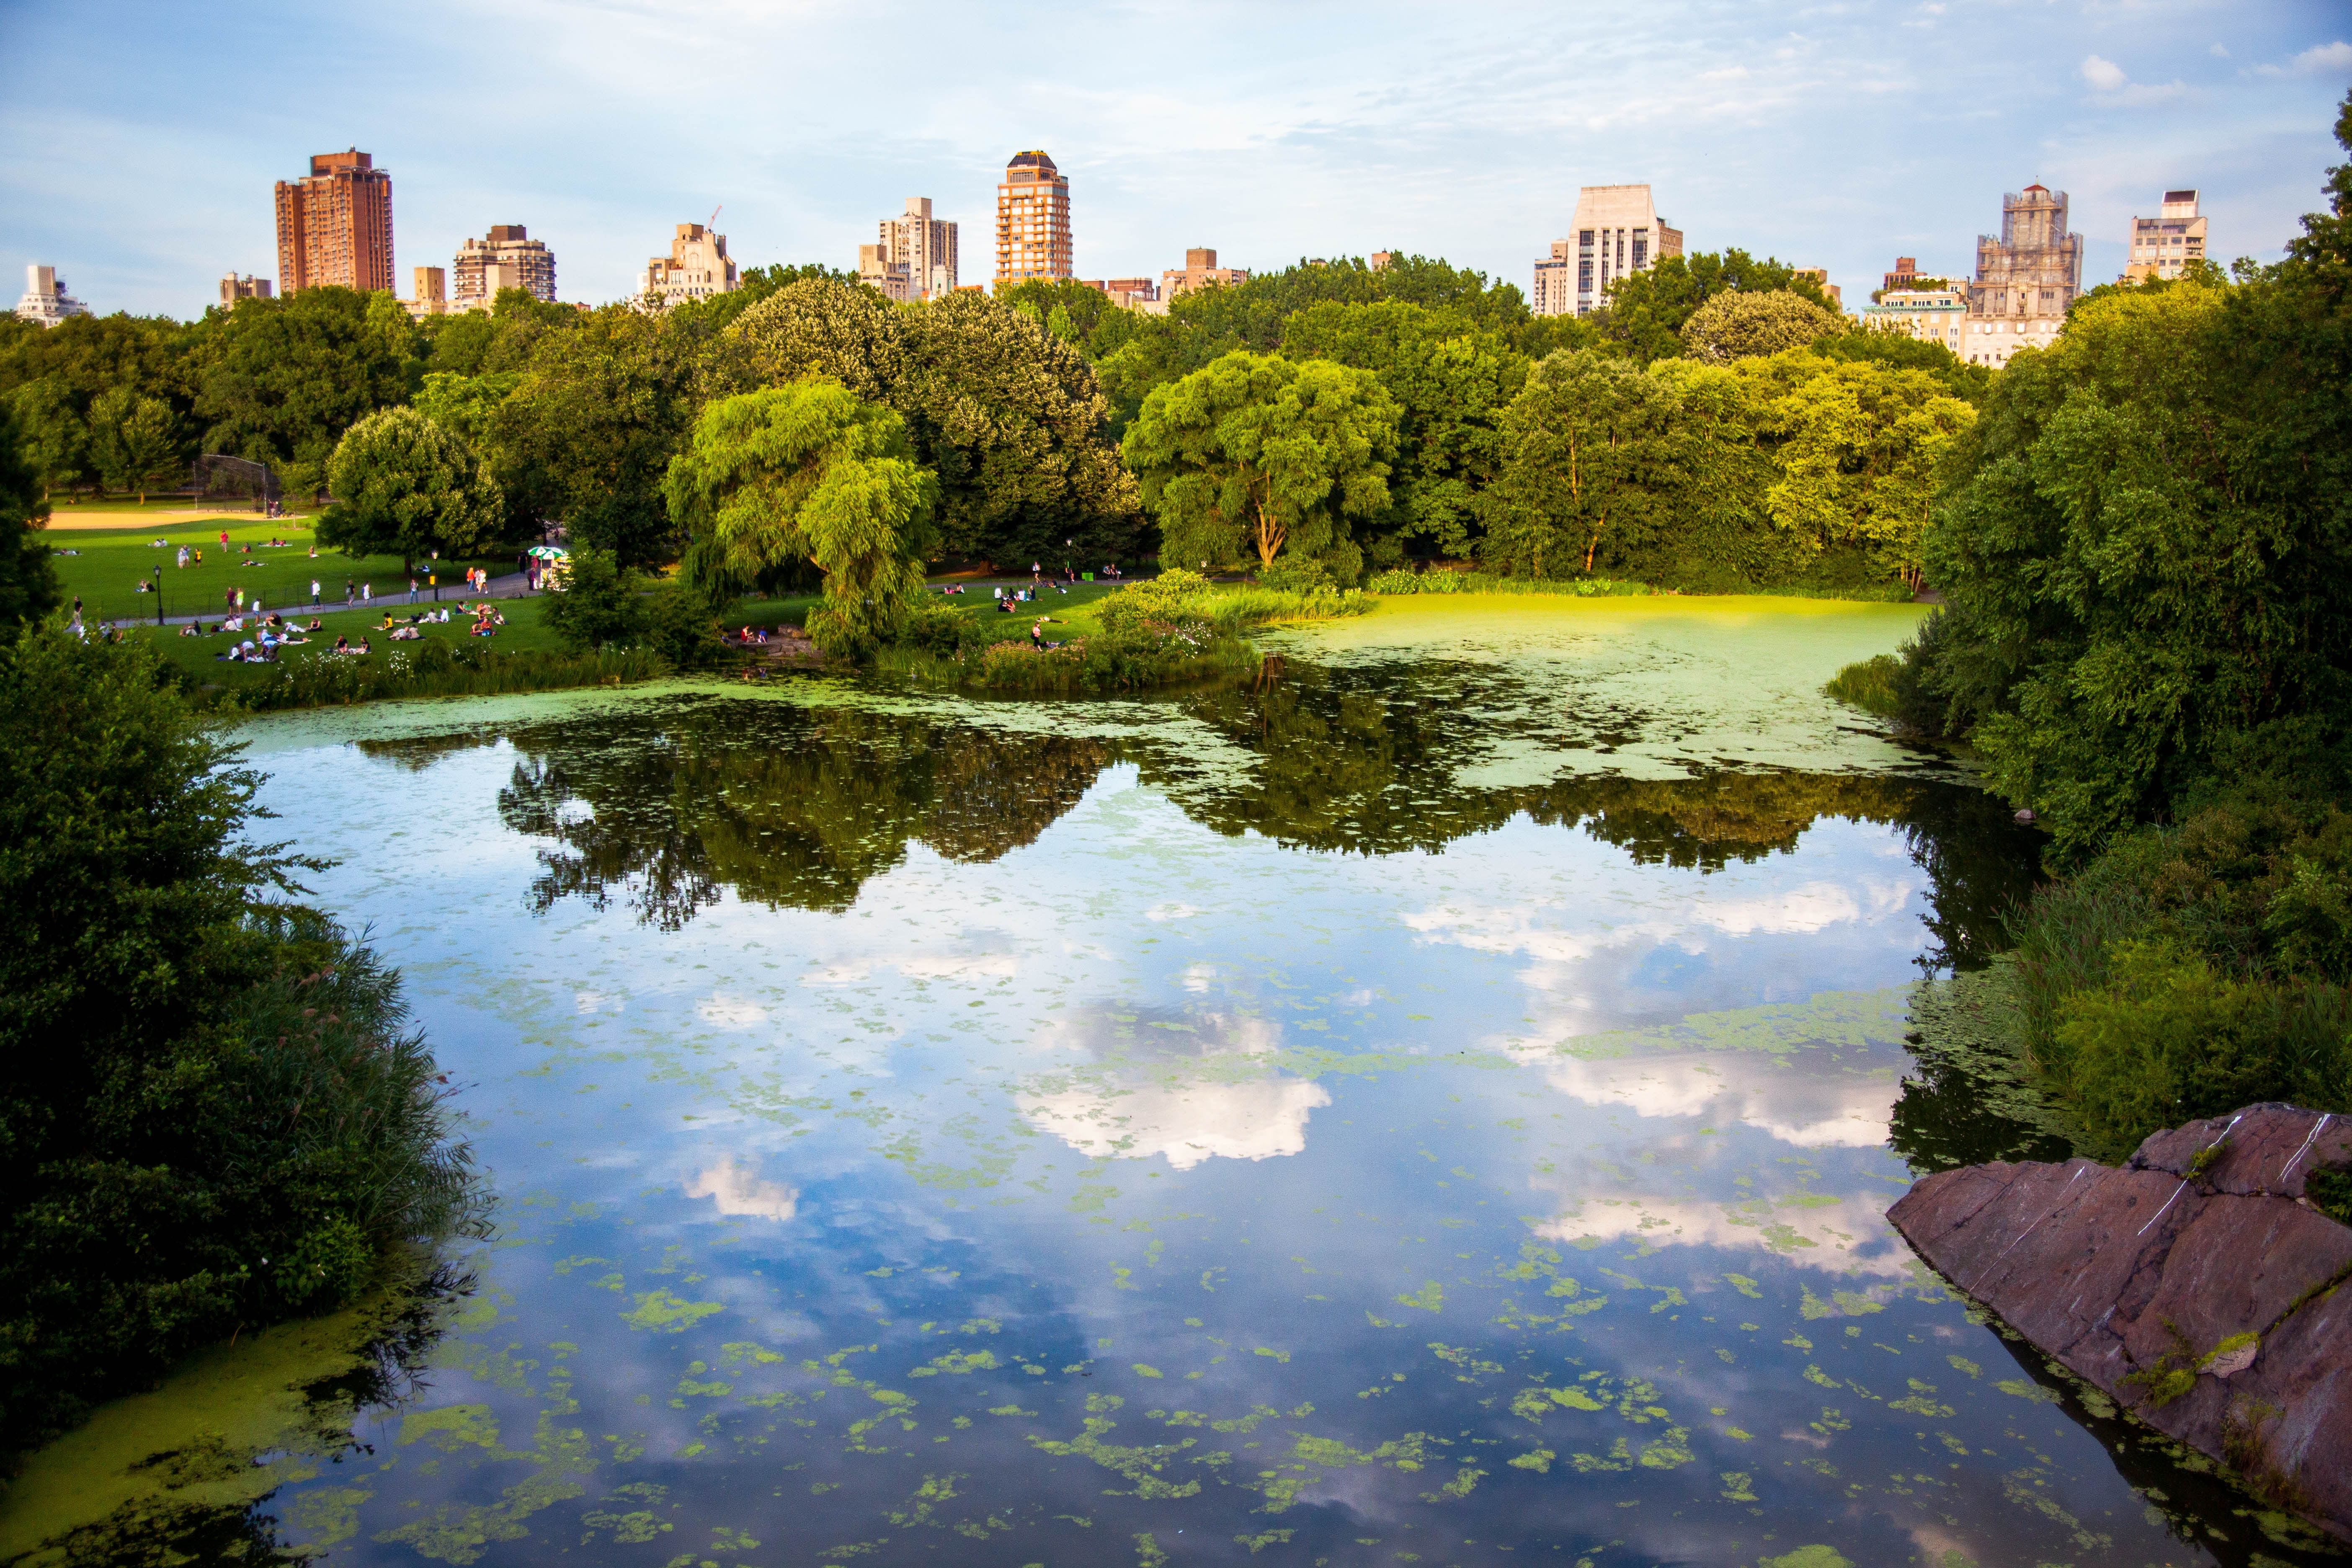 Reflection of Central Park in a pond with New York City skyline in background